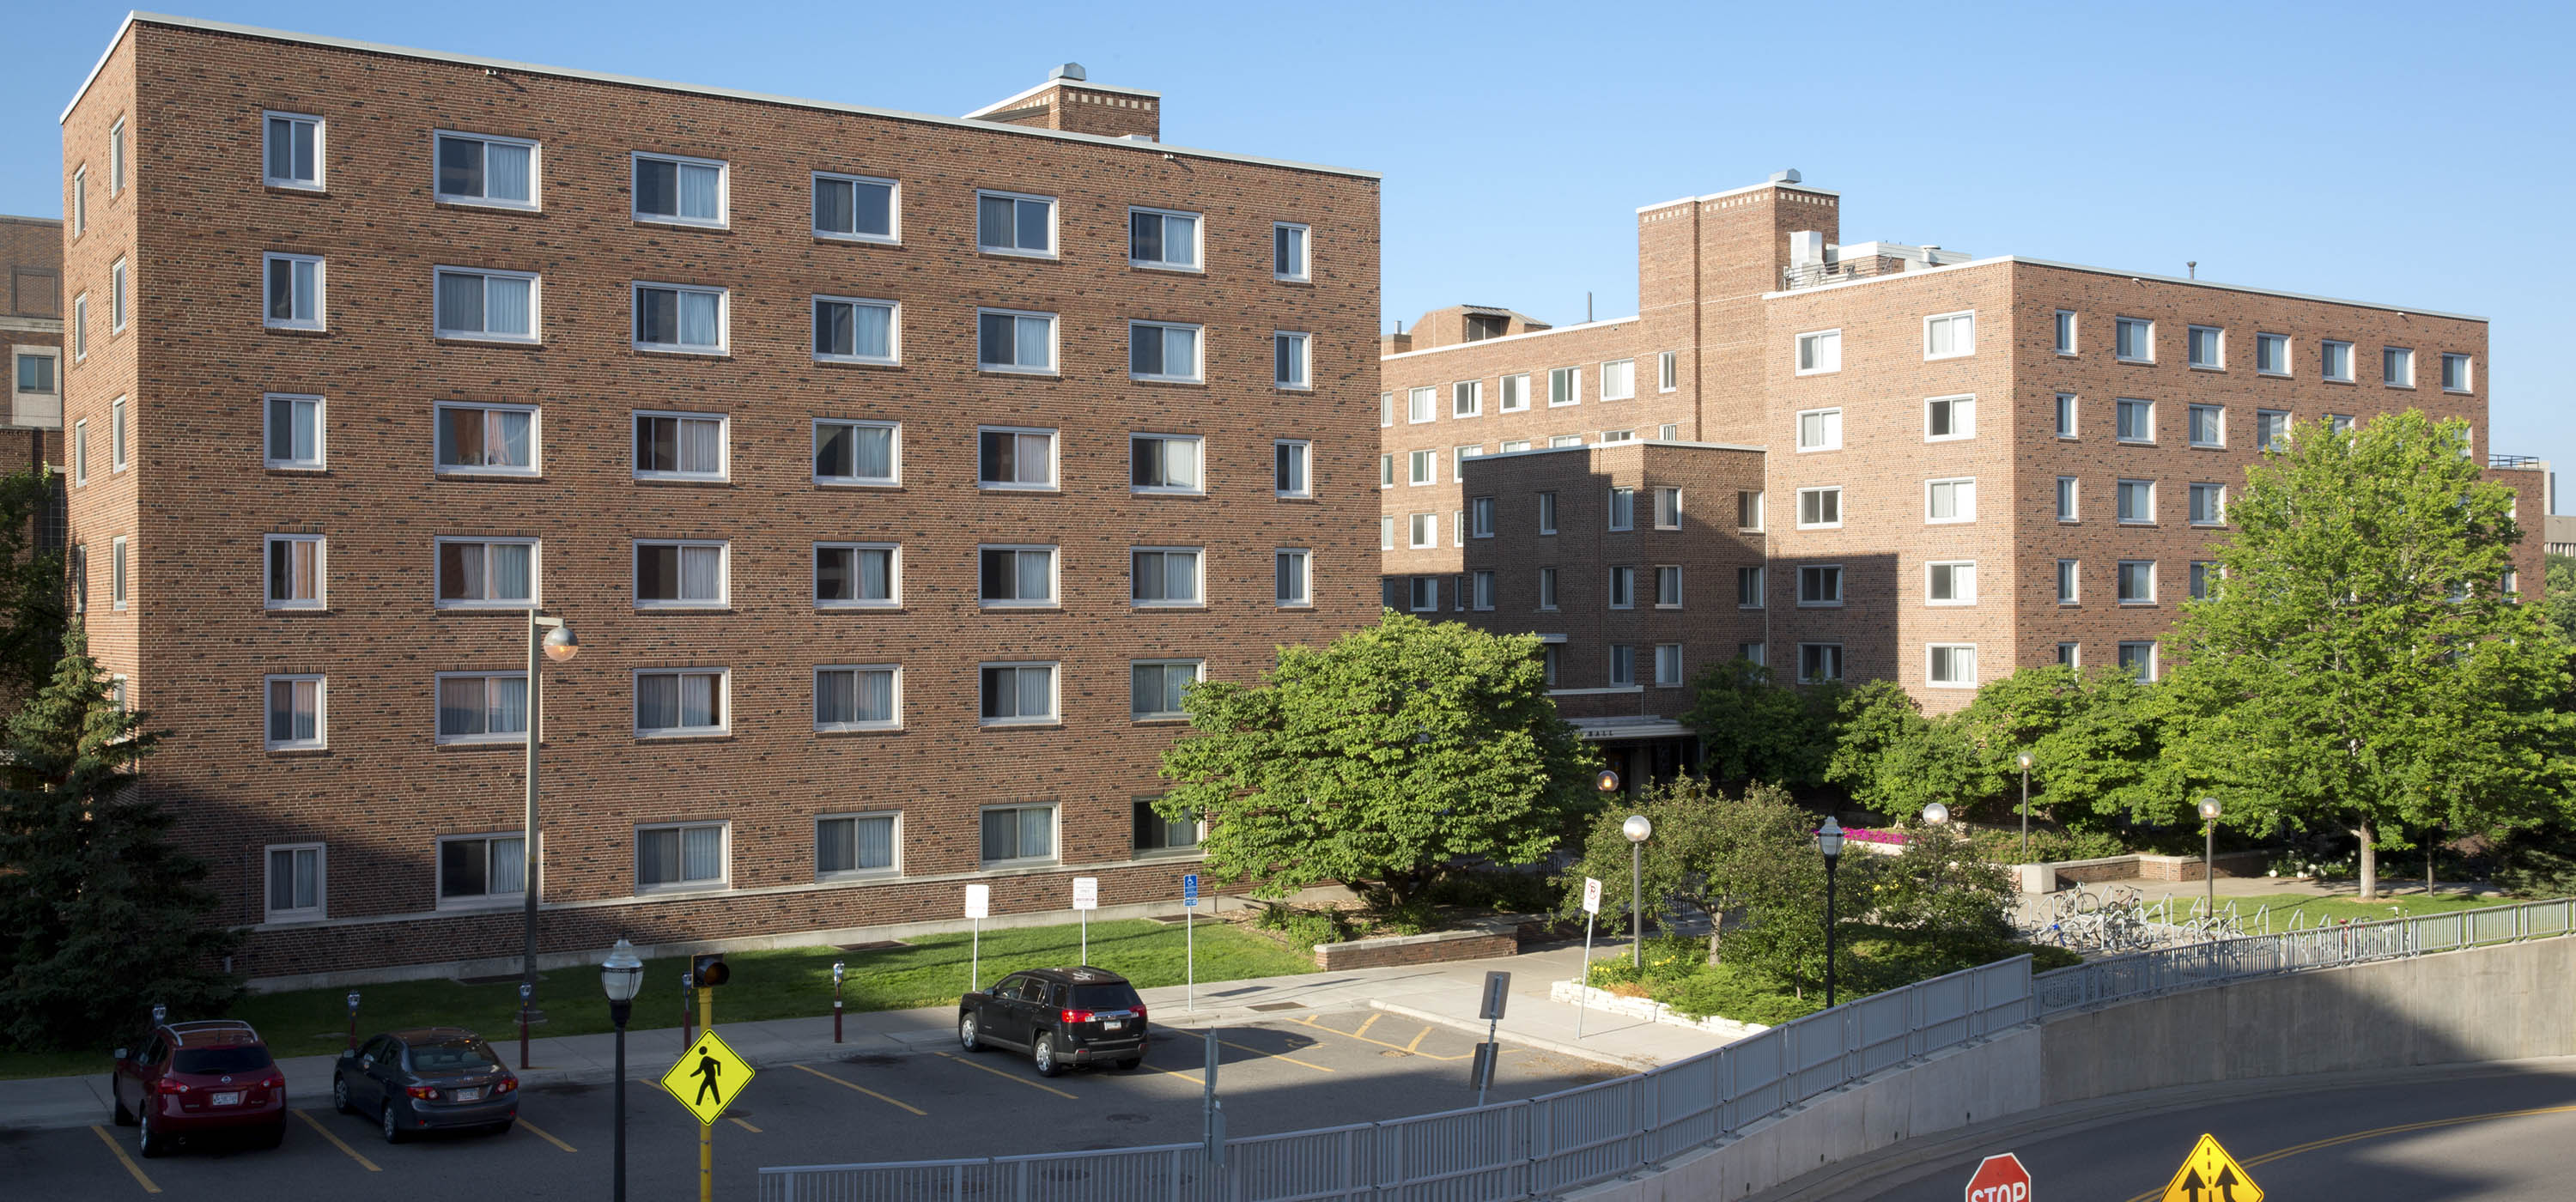 Kent State University Ranking >> The Ultimate Ranking Of Freshman Dorms At The University Of Minnesota Twin Cities - Society19